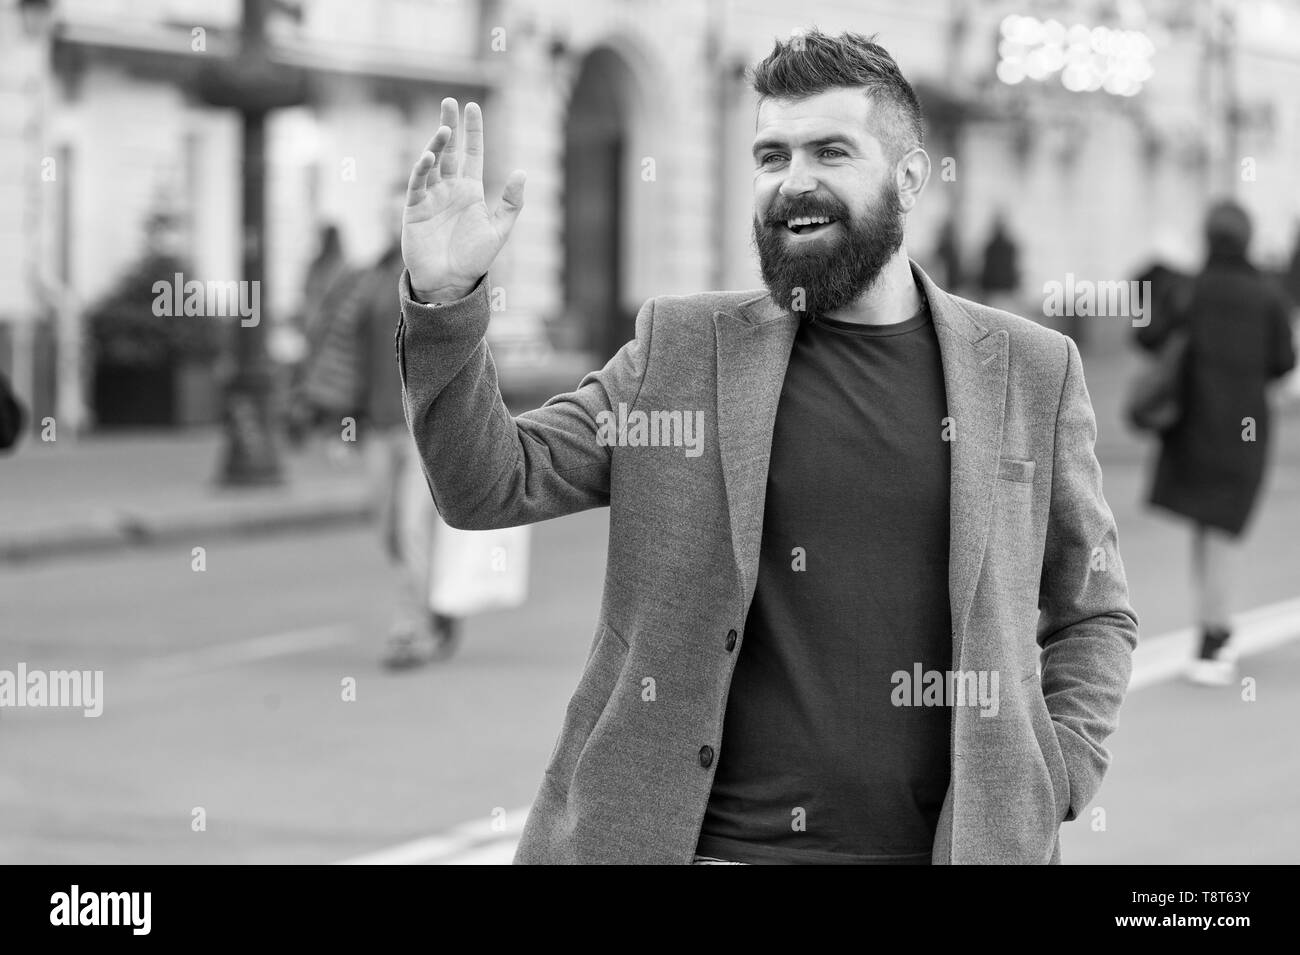 Hipster in casual coat happy to meet friend at urban street. Chance meeting concept. Meet old friend by accident. Man bearded businessman waiting someone in city center. Happy to meet you. - Stock Image